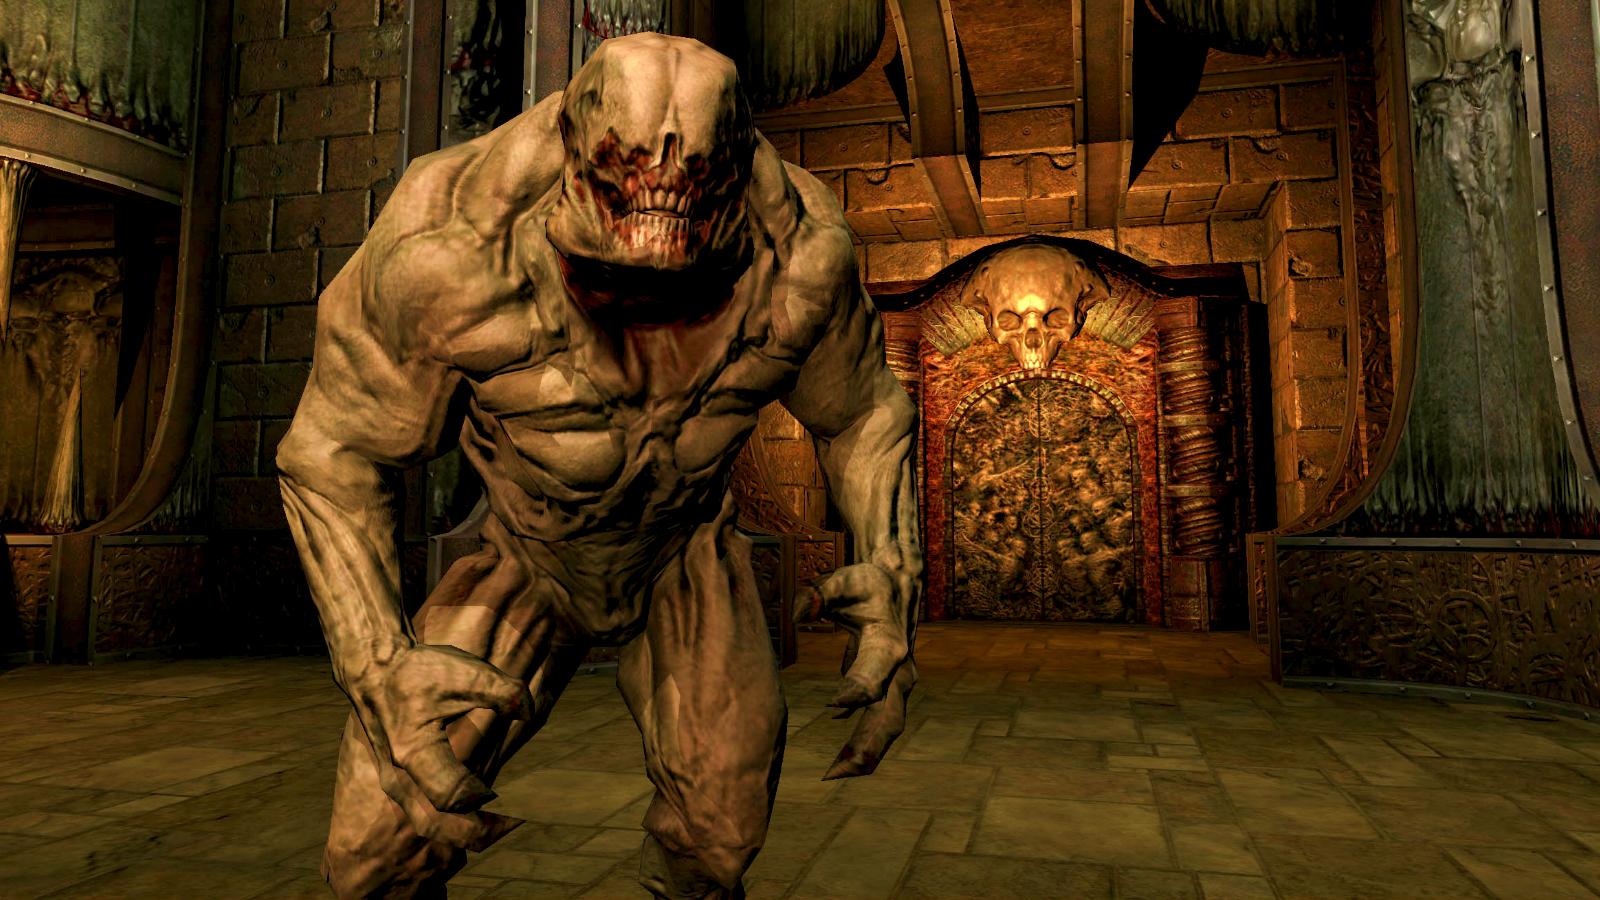 Doom 3 is a great game, but it could have been so much more